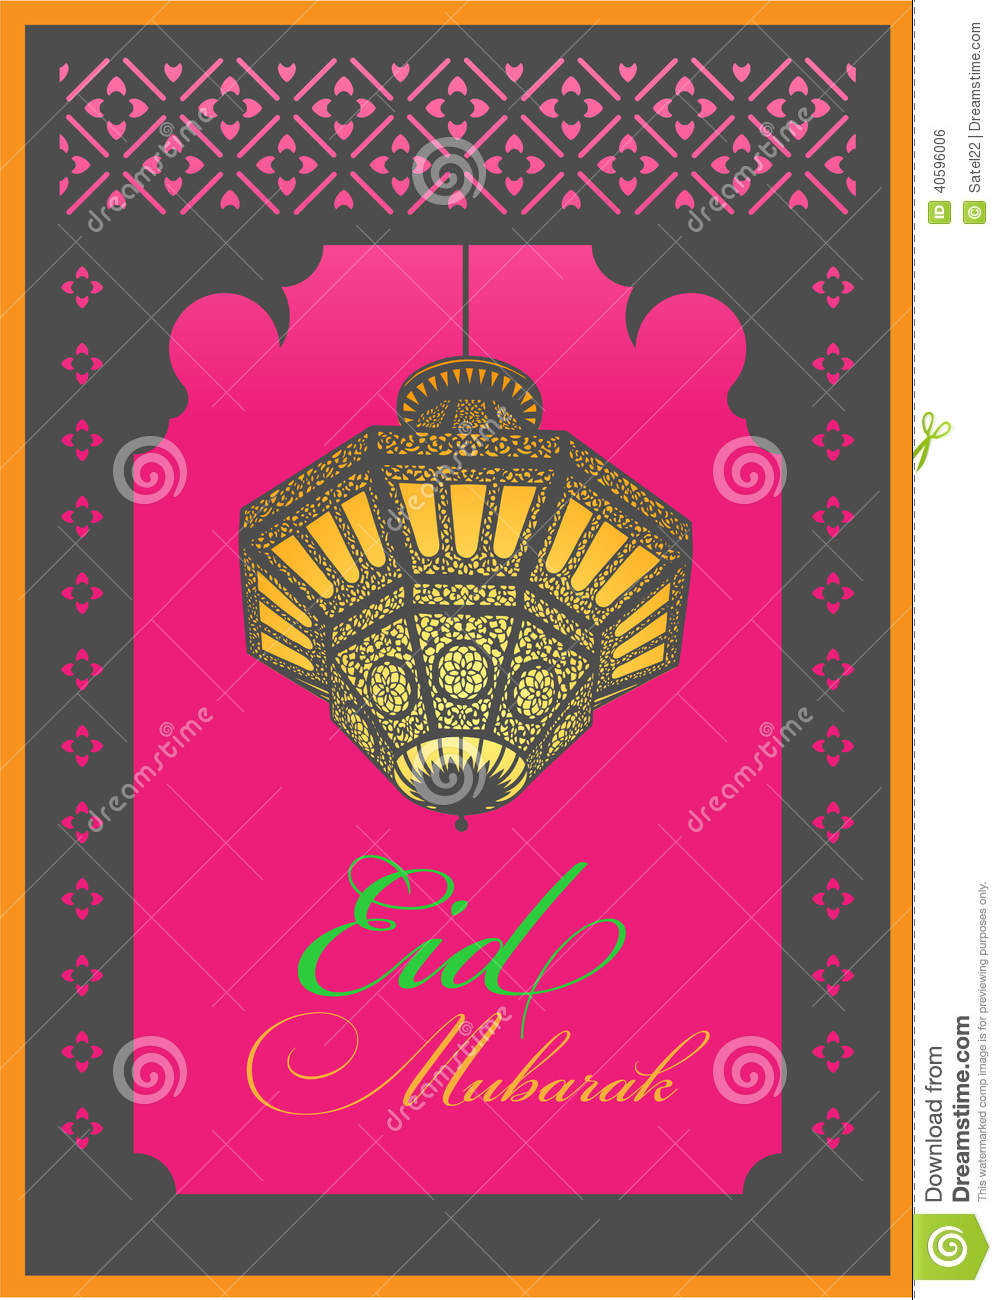 Eid greetings card stock vector illustration of candle 40596006 eid greetings card kristyandbryce Choice Image